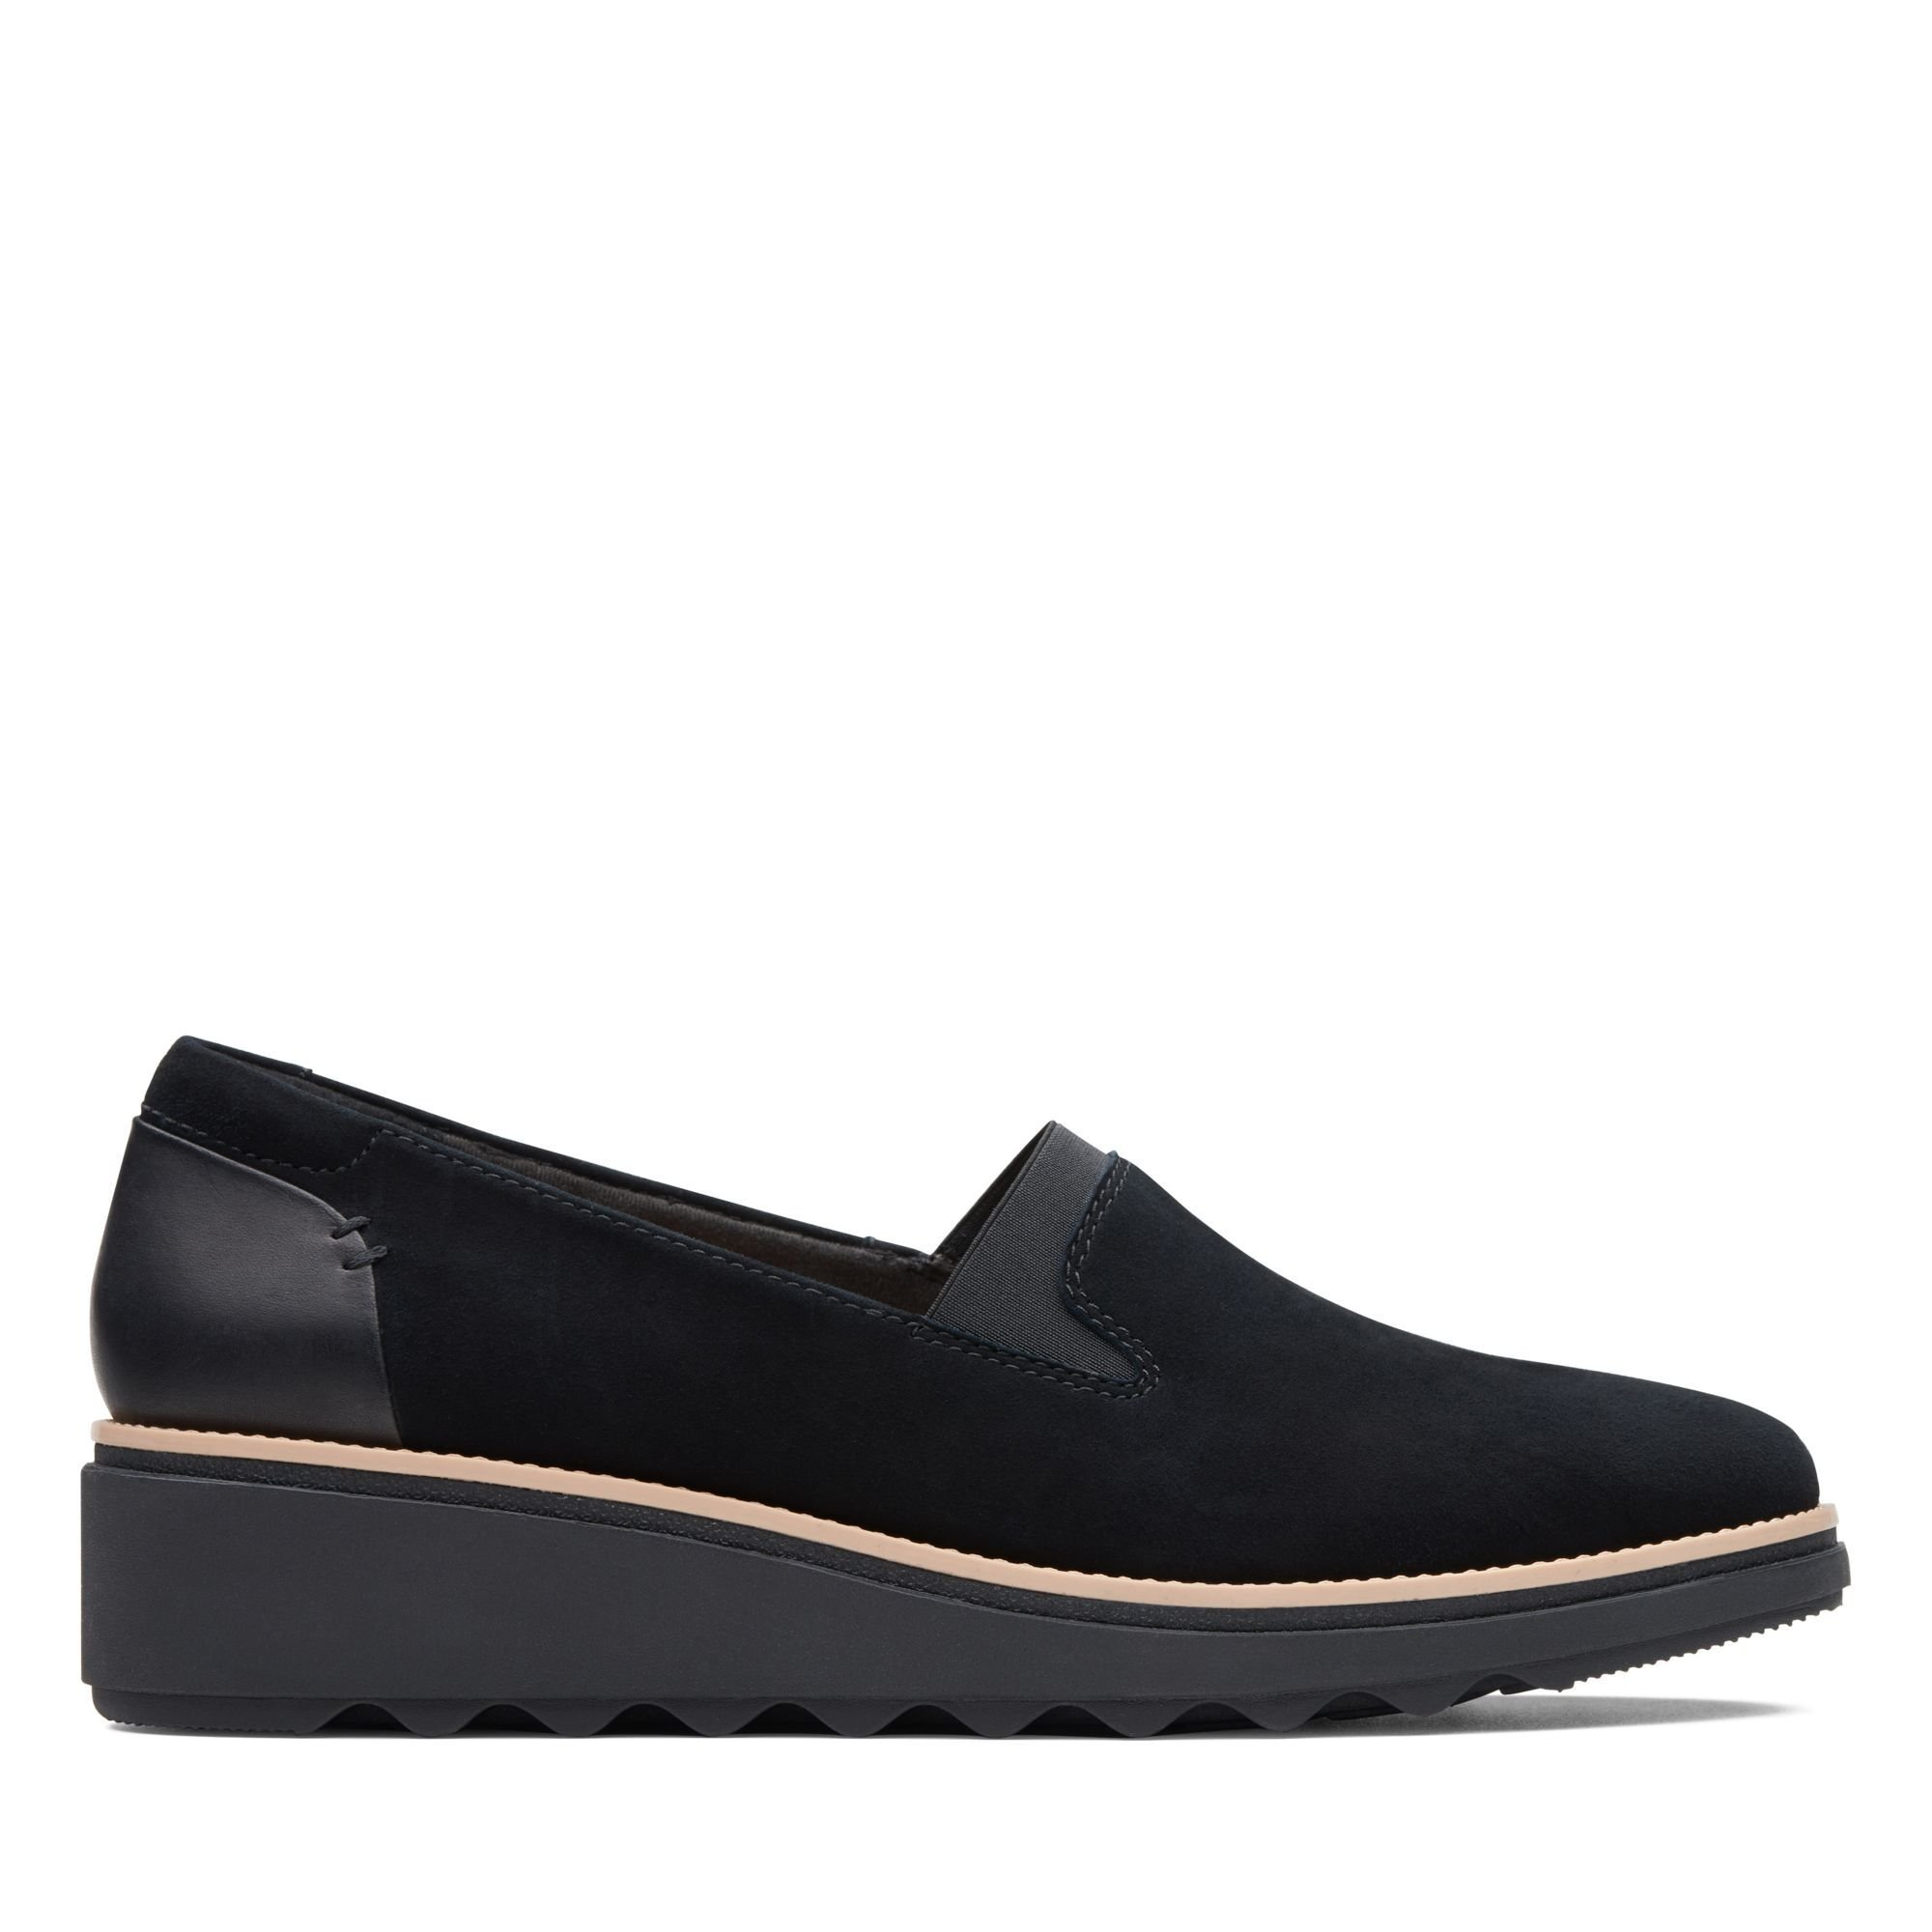 Black Suede Shoes - Sharon Dolly | Clarks